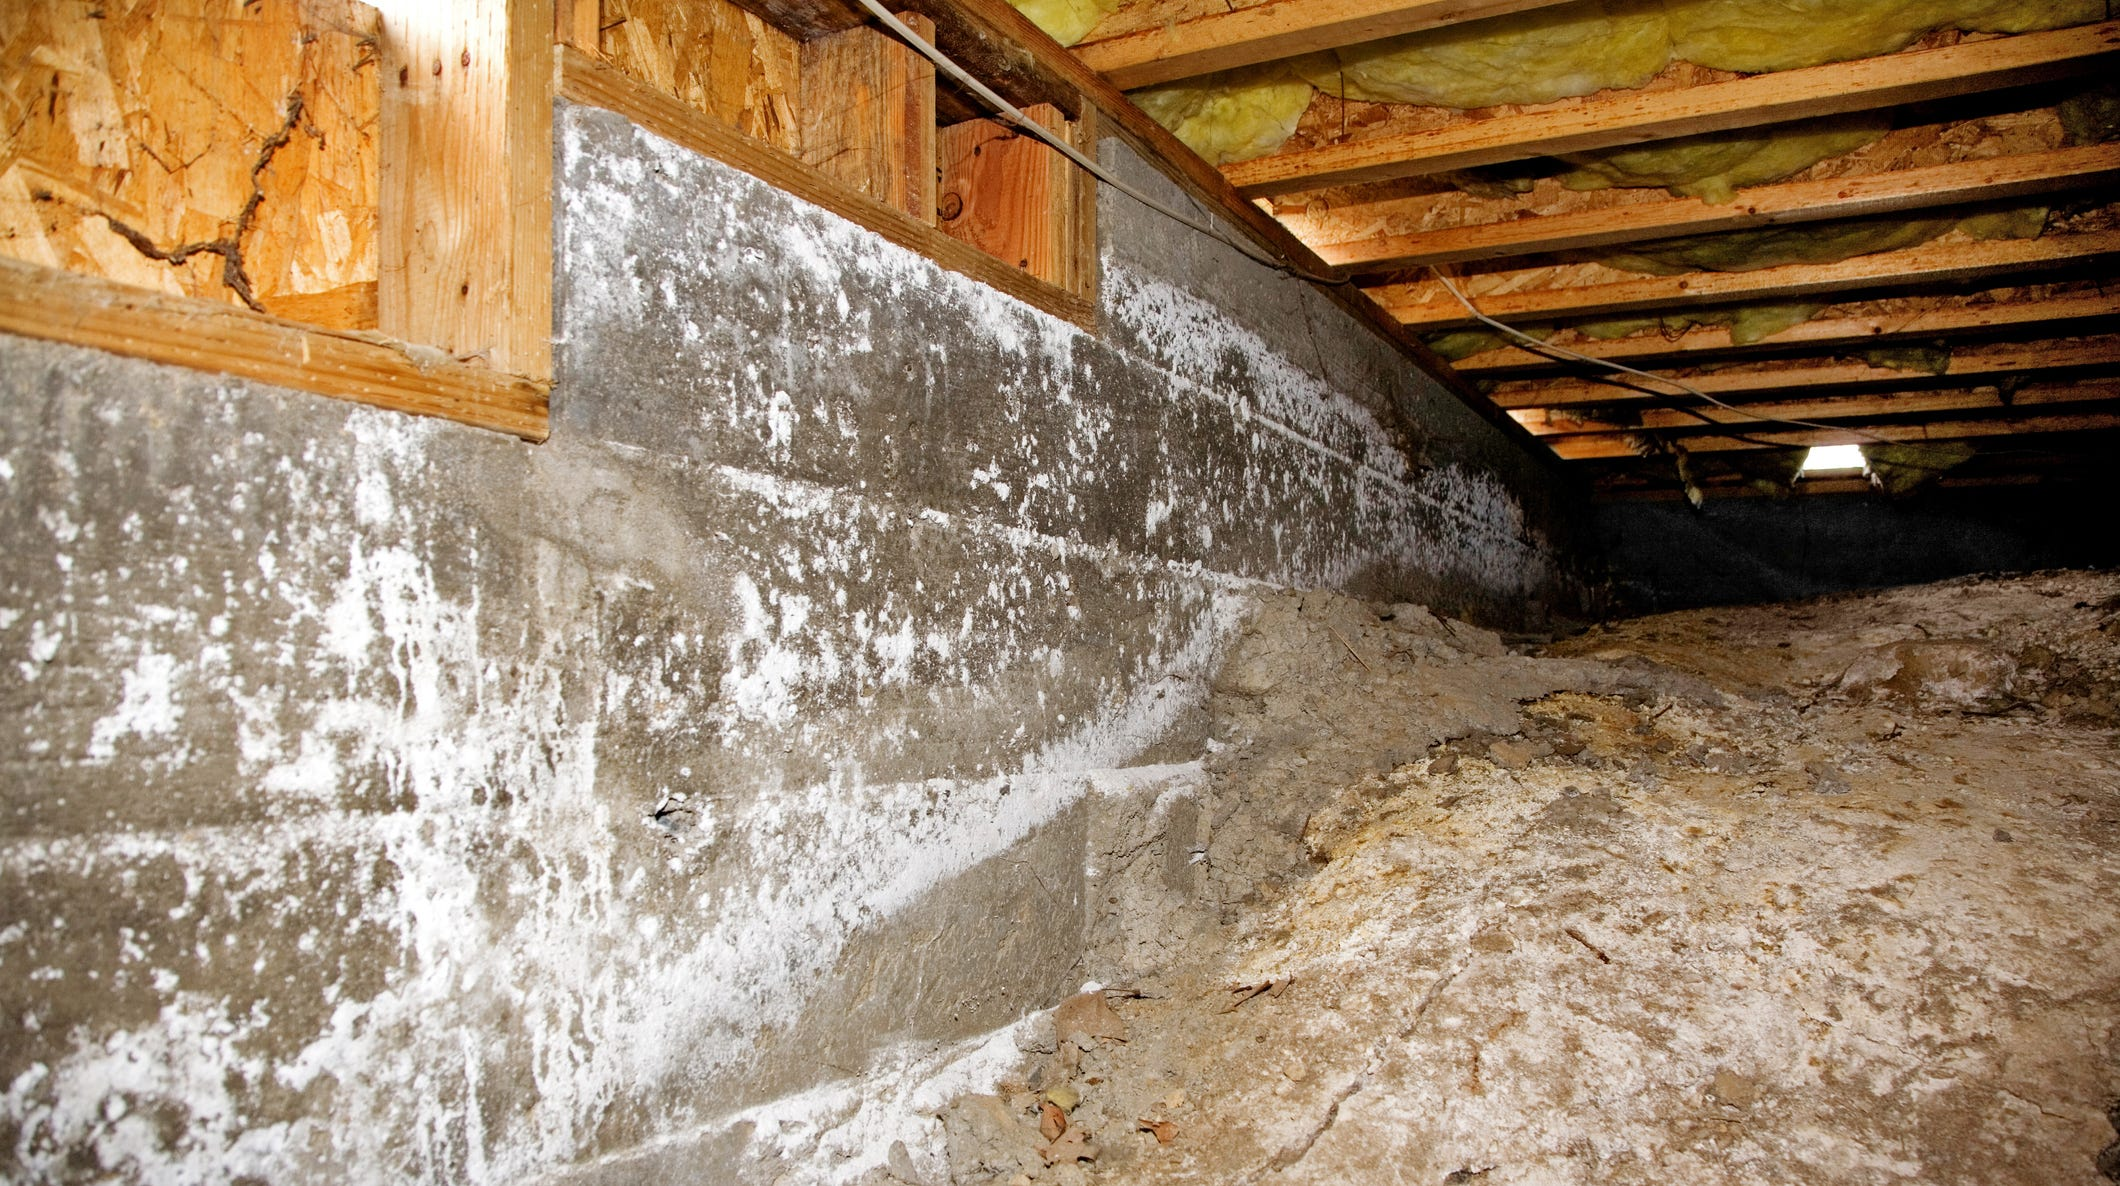 Without the pros, cleaning mold can be unsafe and even counterproductive if cross contamination occurs.